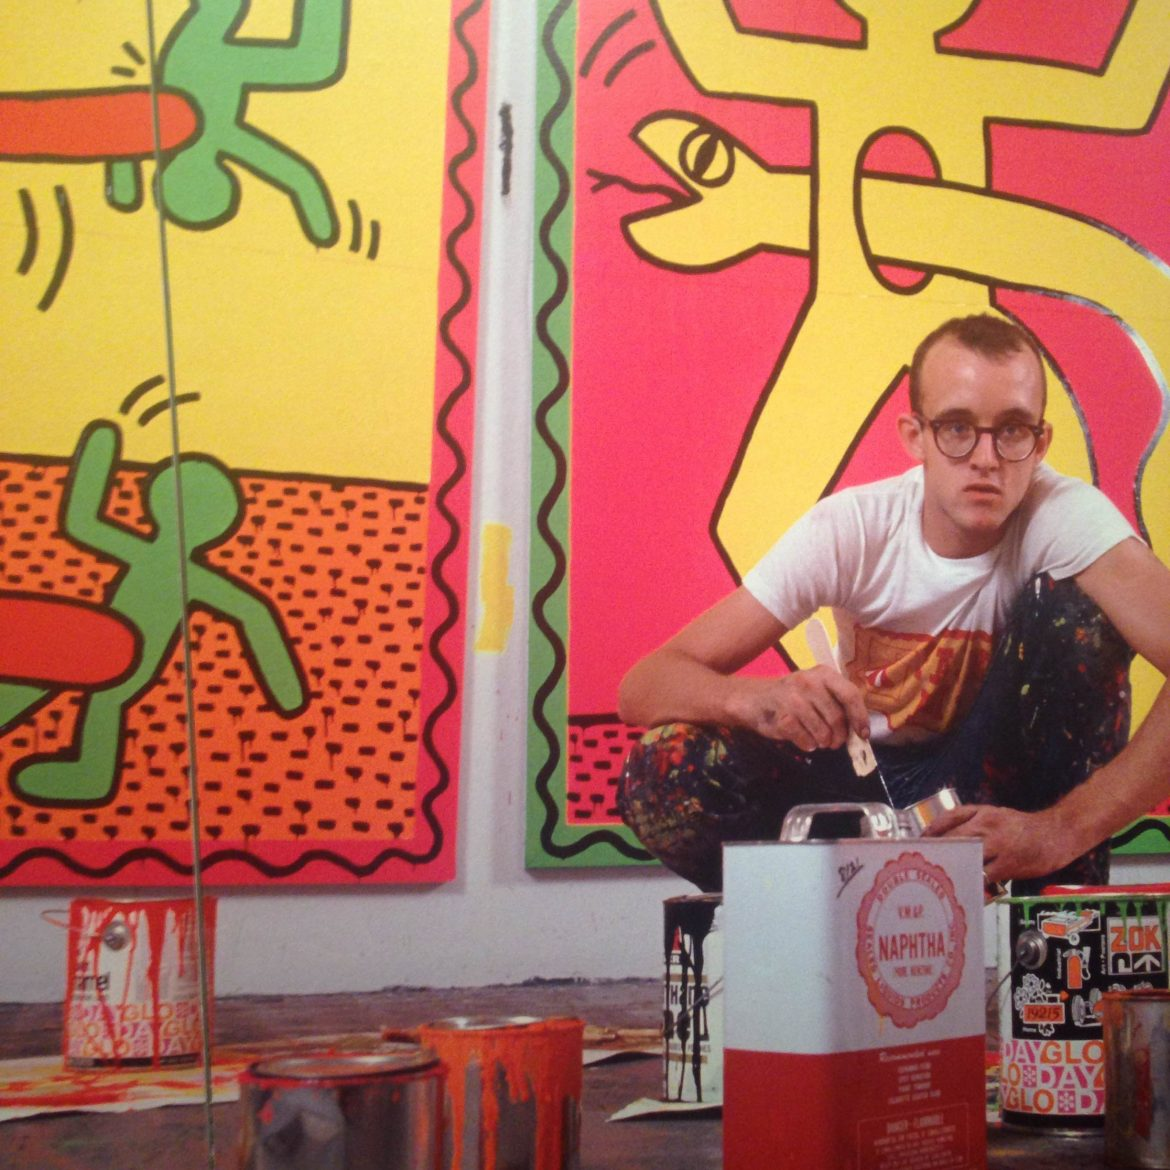 Keith Haring  Keith Haring: The Political Line Keith Haring 9 e1416289665528